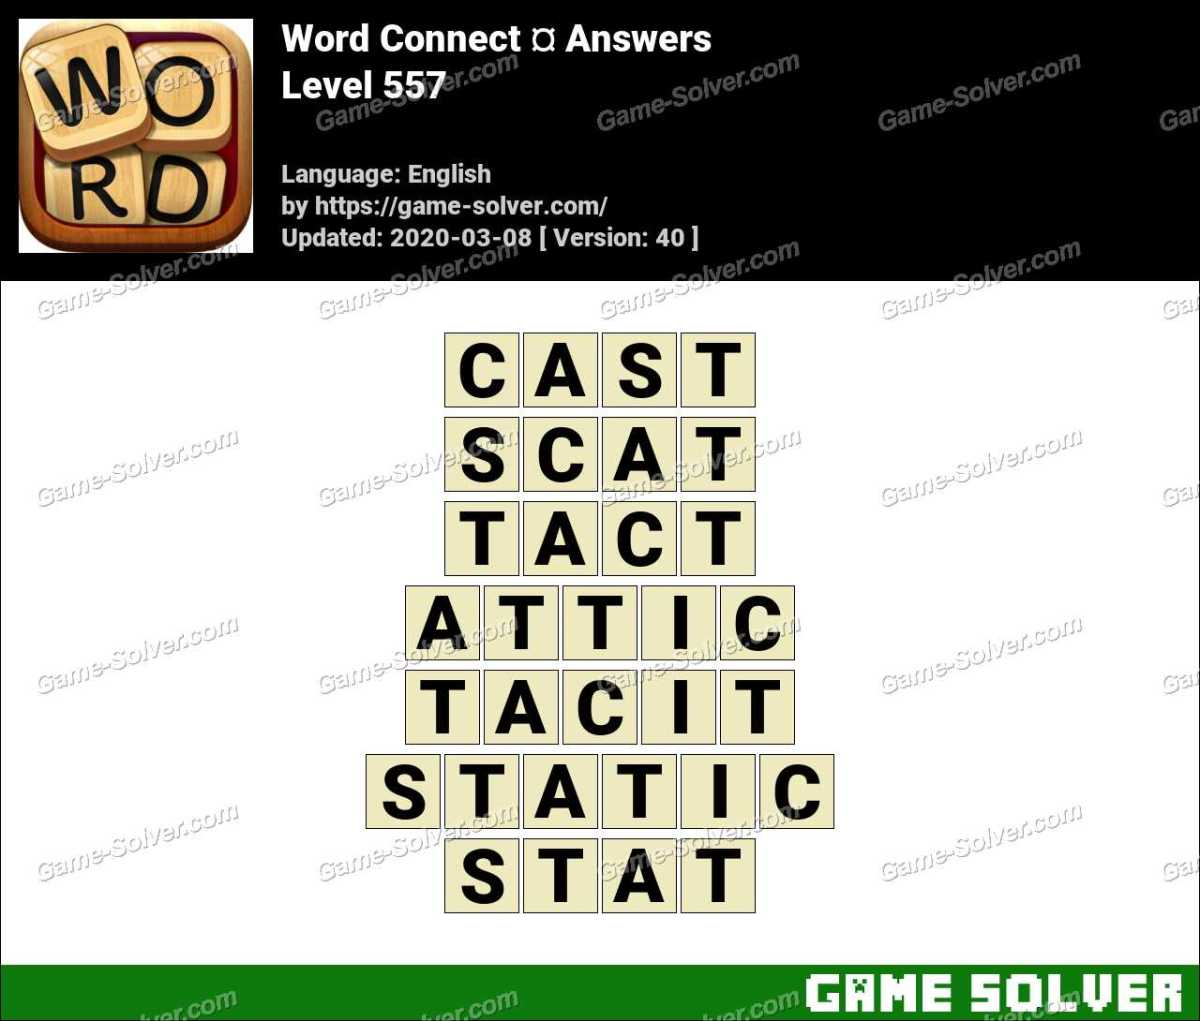 Word Connect Level 557 Answers